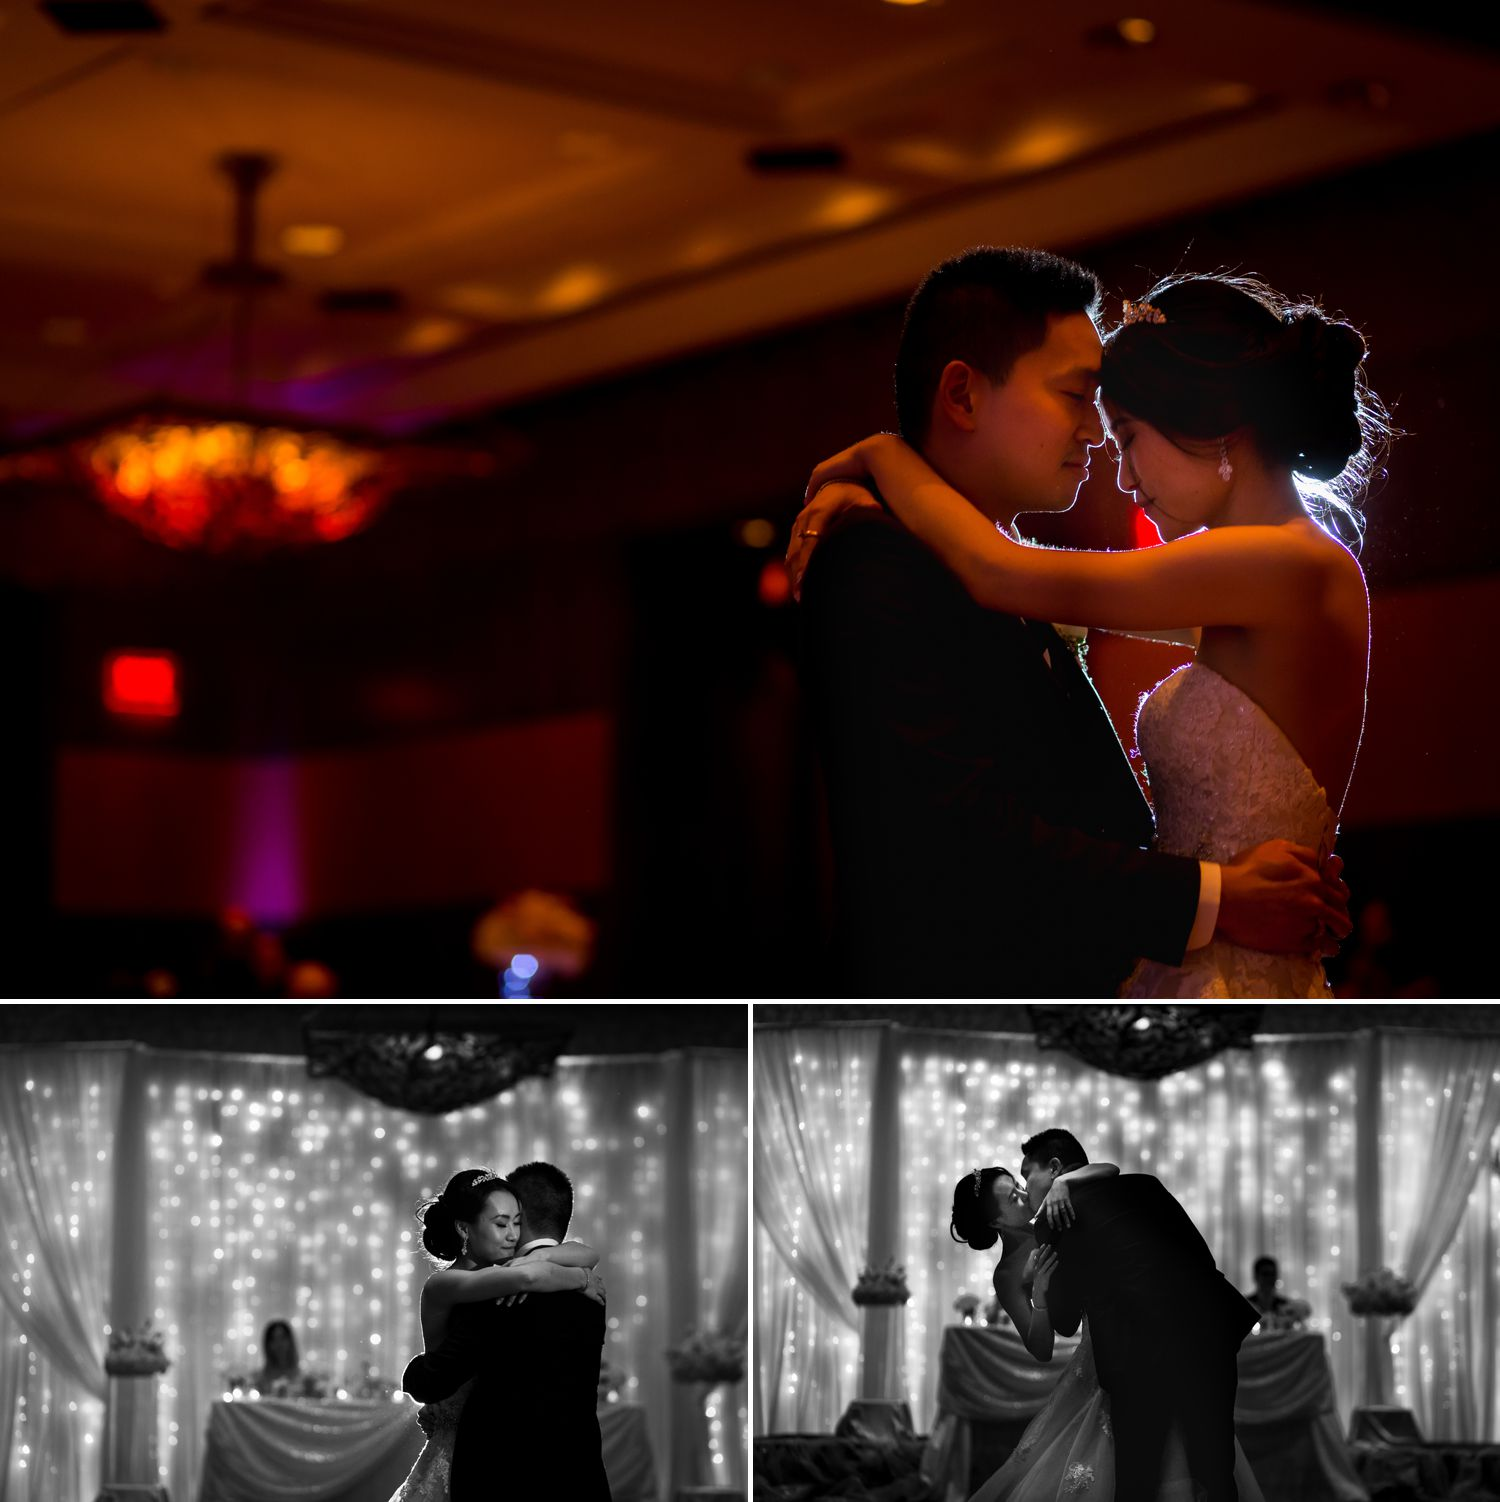 The bride and groom during their first dance during their wedding reception at The Hilton Casino Lac Leamy in Gatineau, Quebec